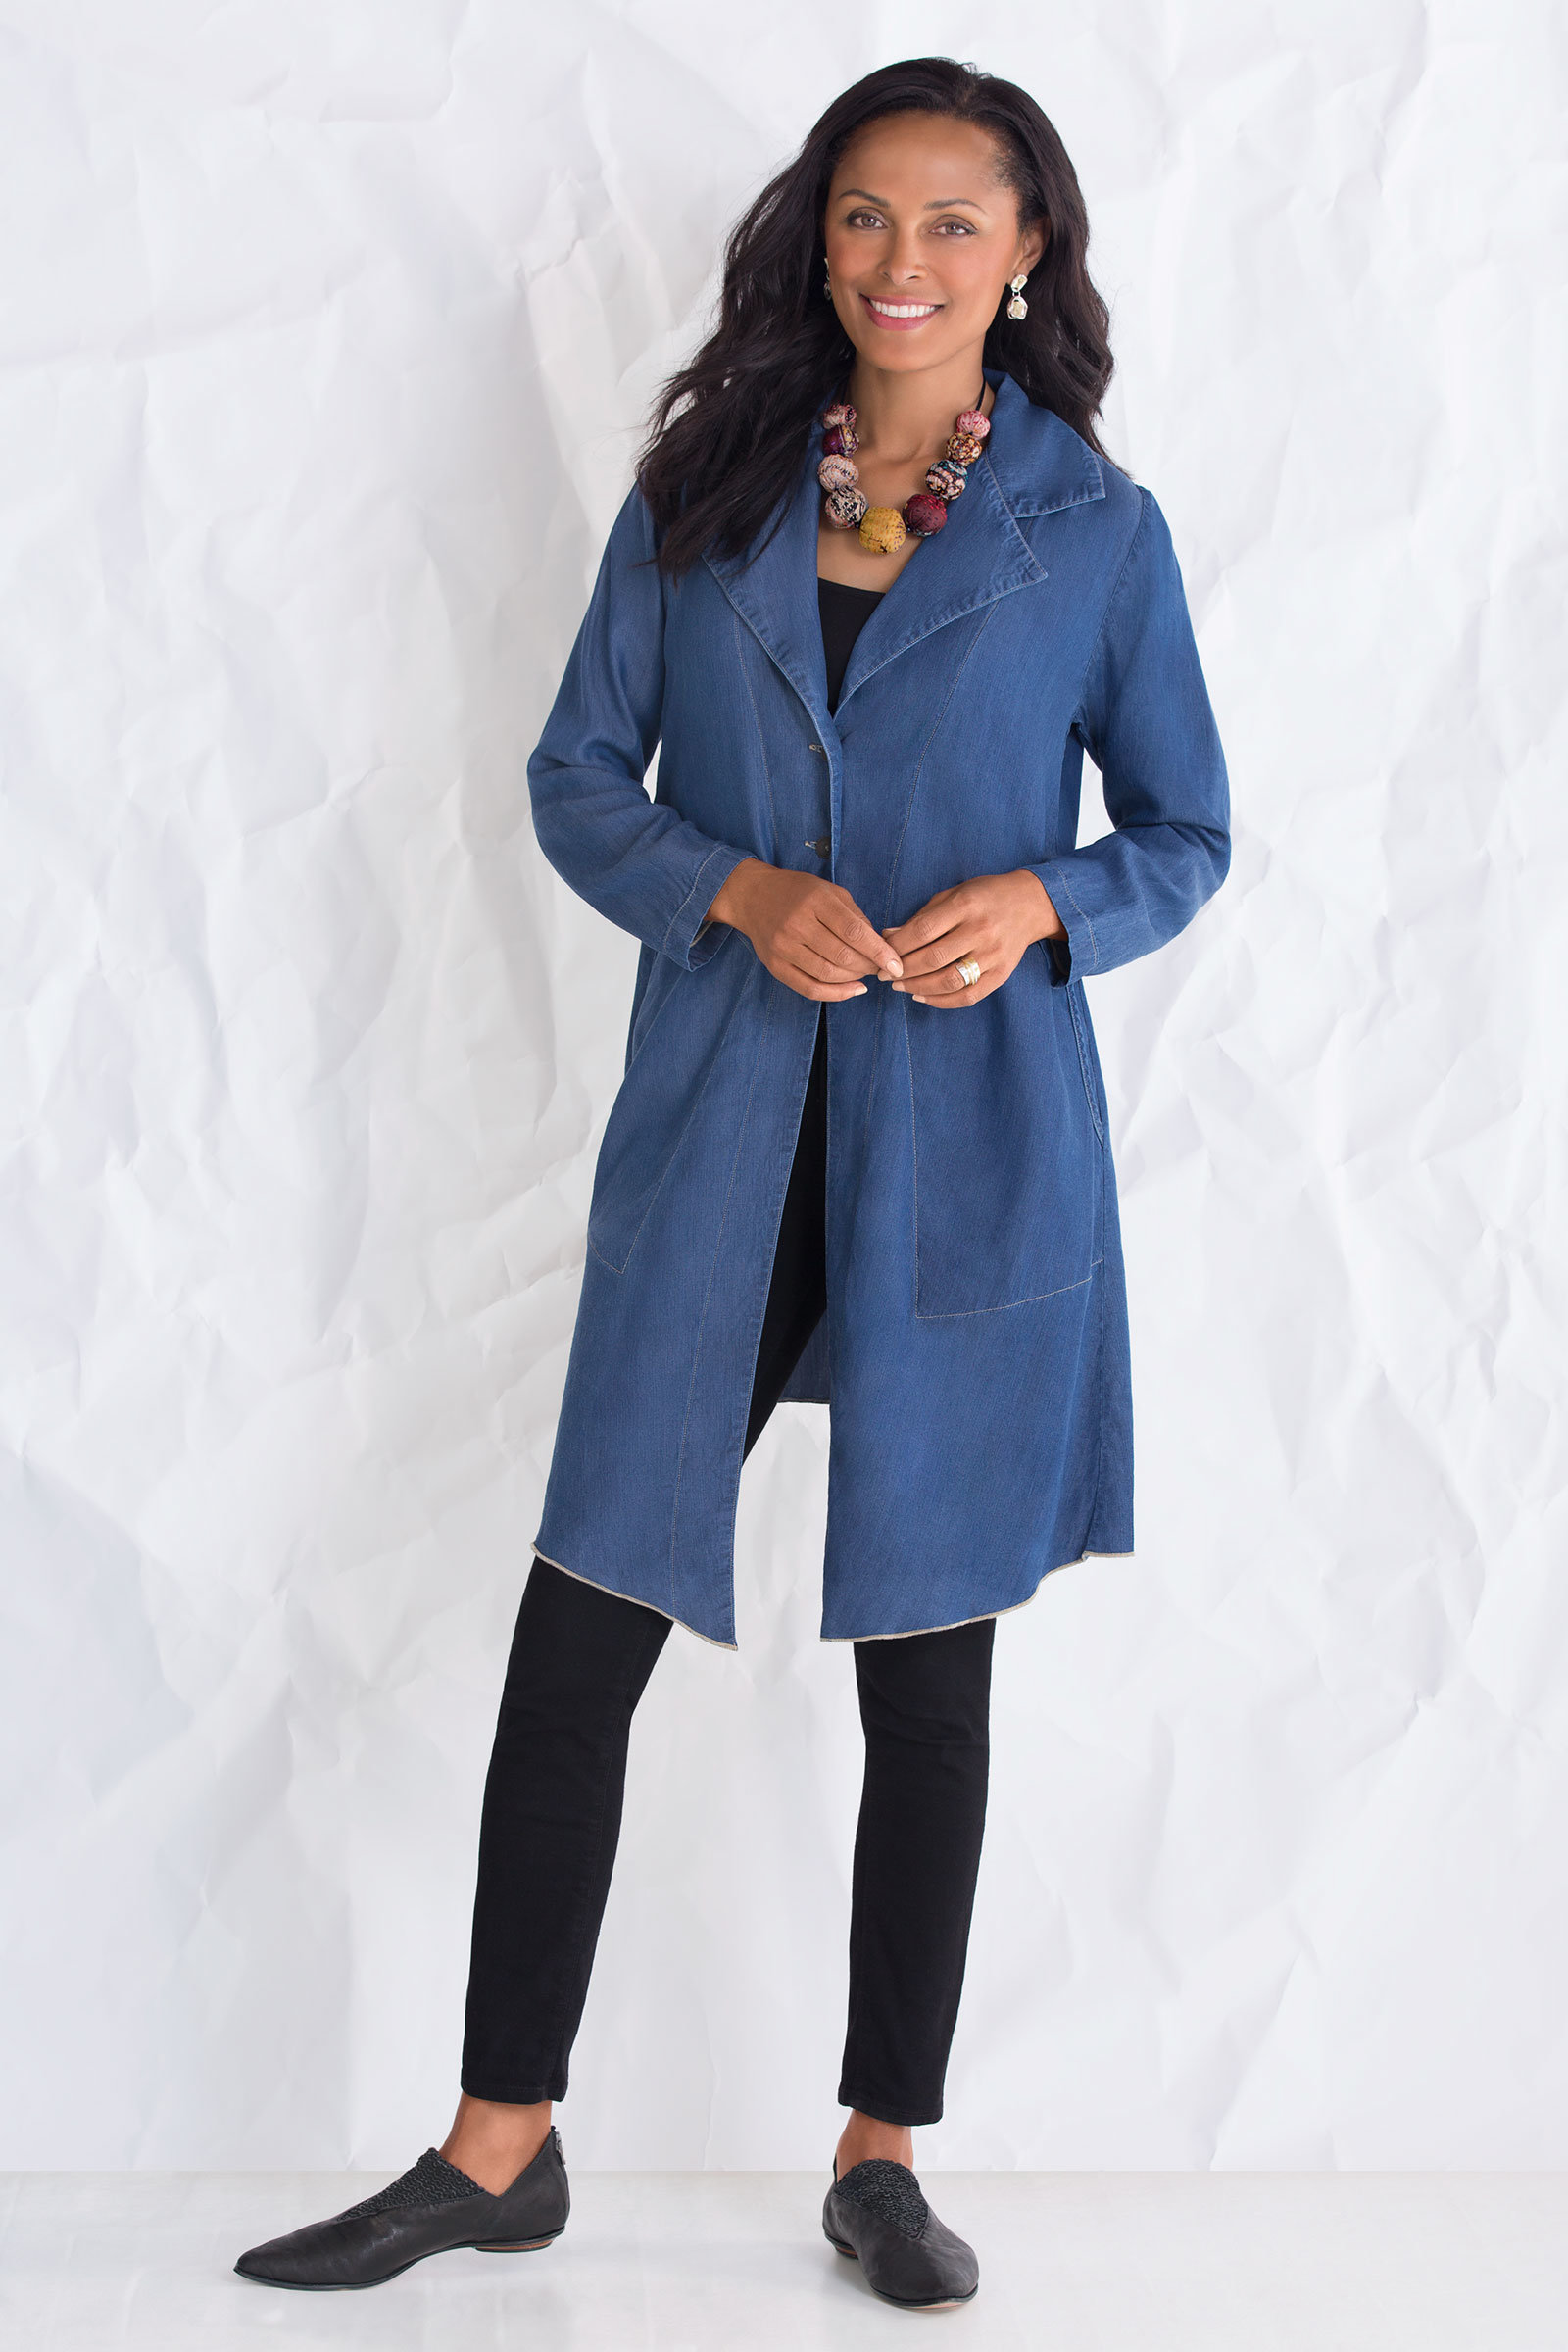 Tencel Duster By Cynthia Ashby Woven Jacket Artful Home